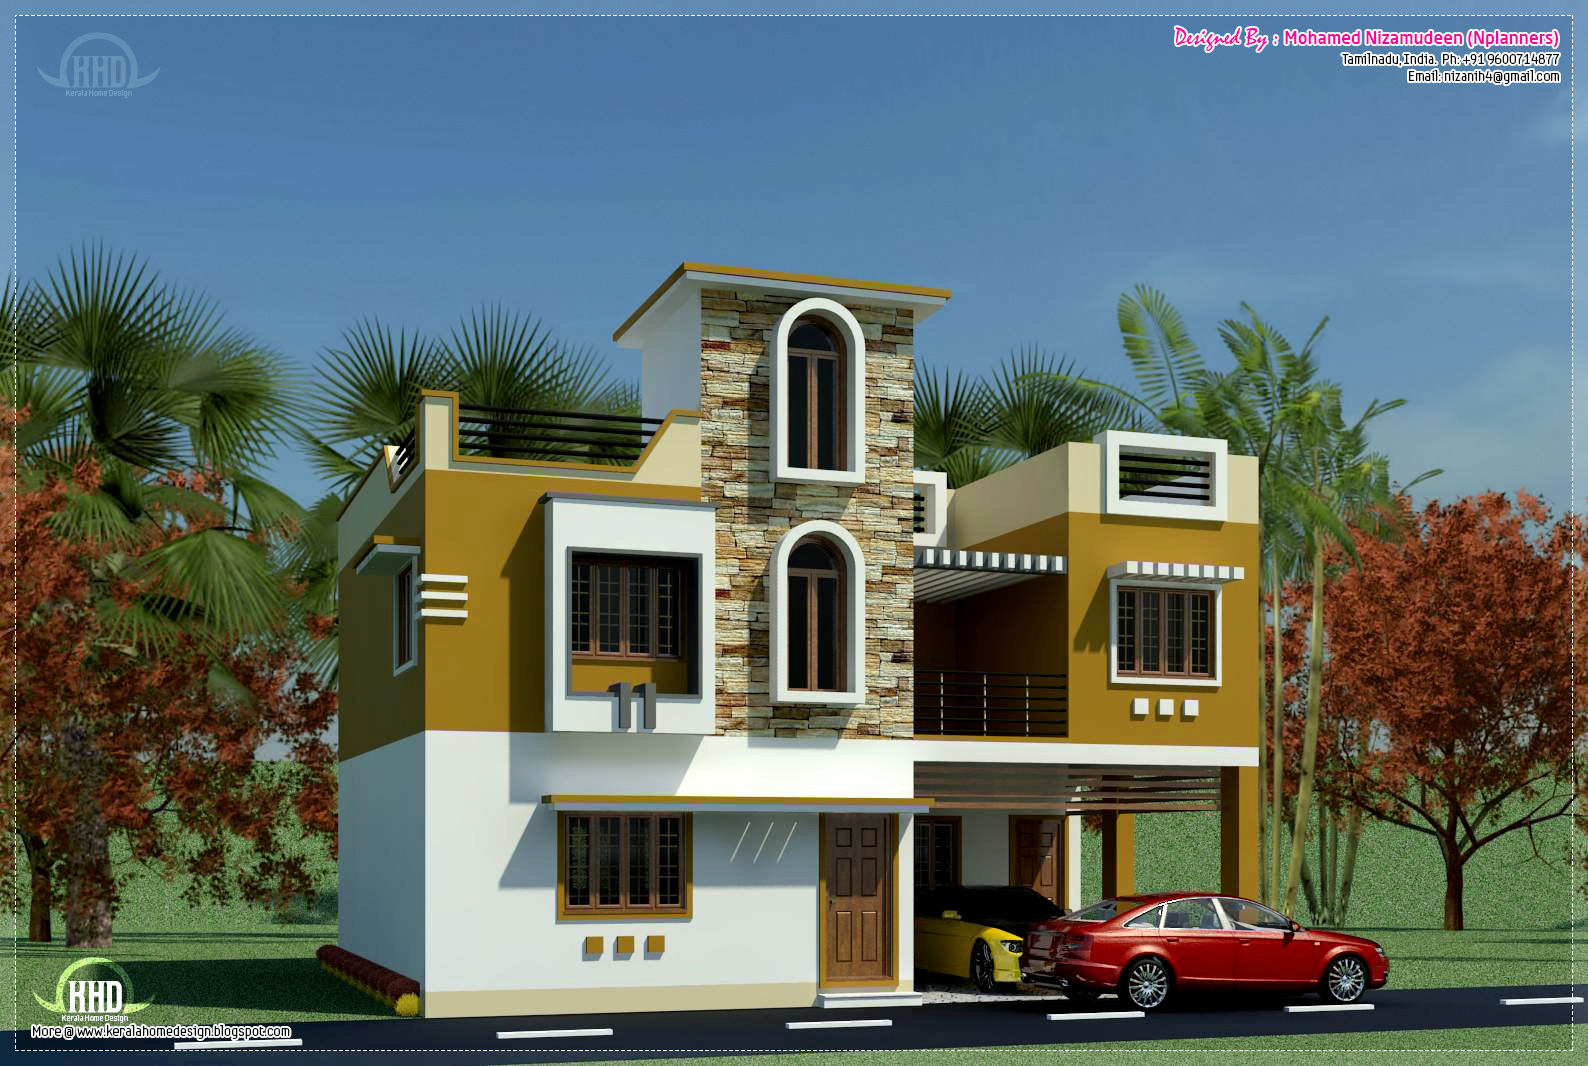 Siddu buzz online kerala home design for Home front design indian style